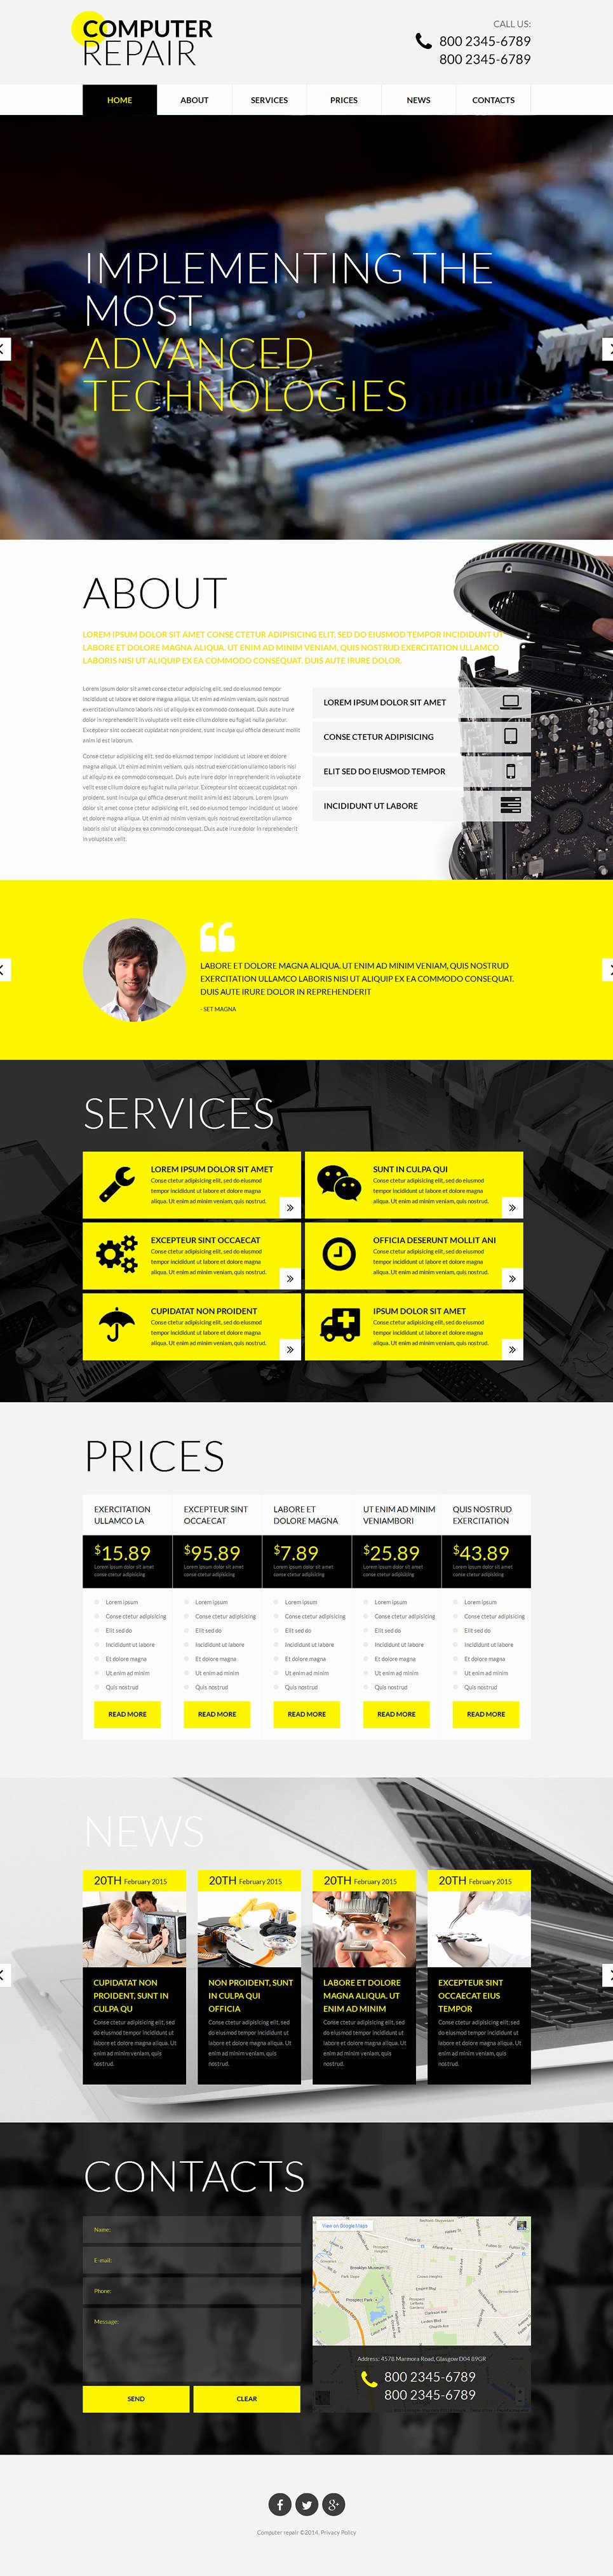 Computer Repair Website Template Elegant Puter Repair Responsive Website Template